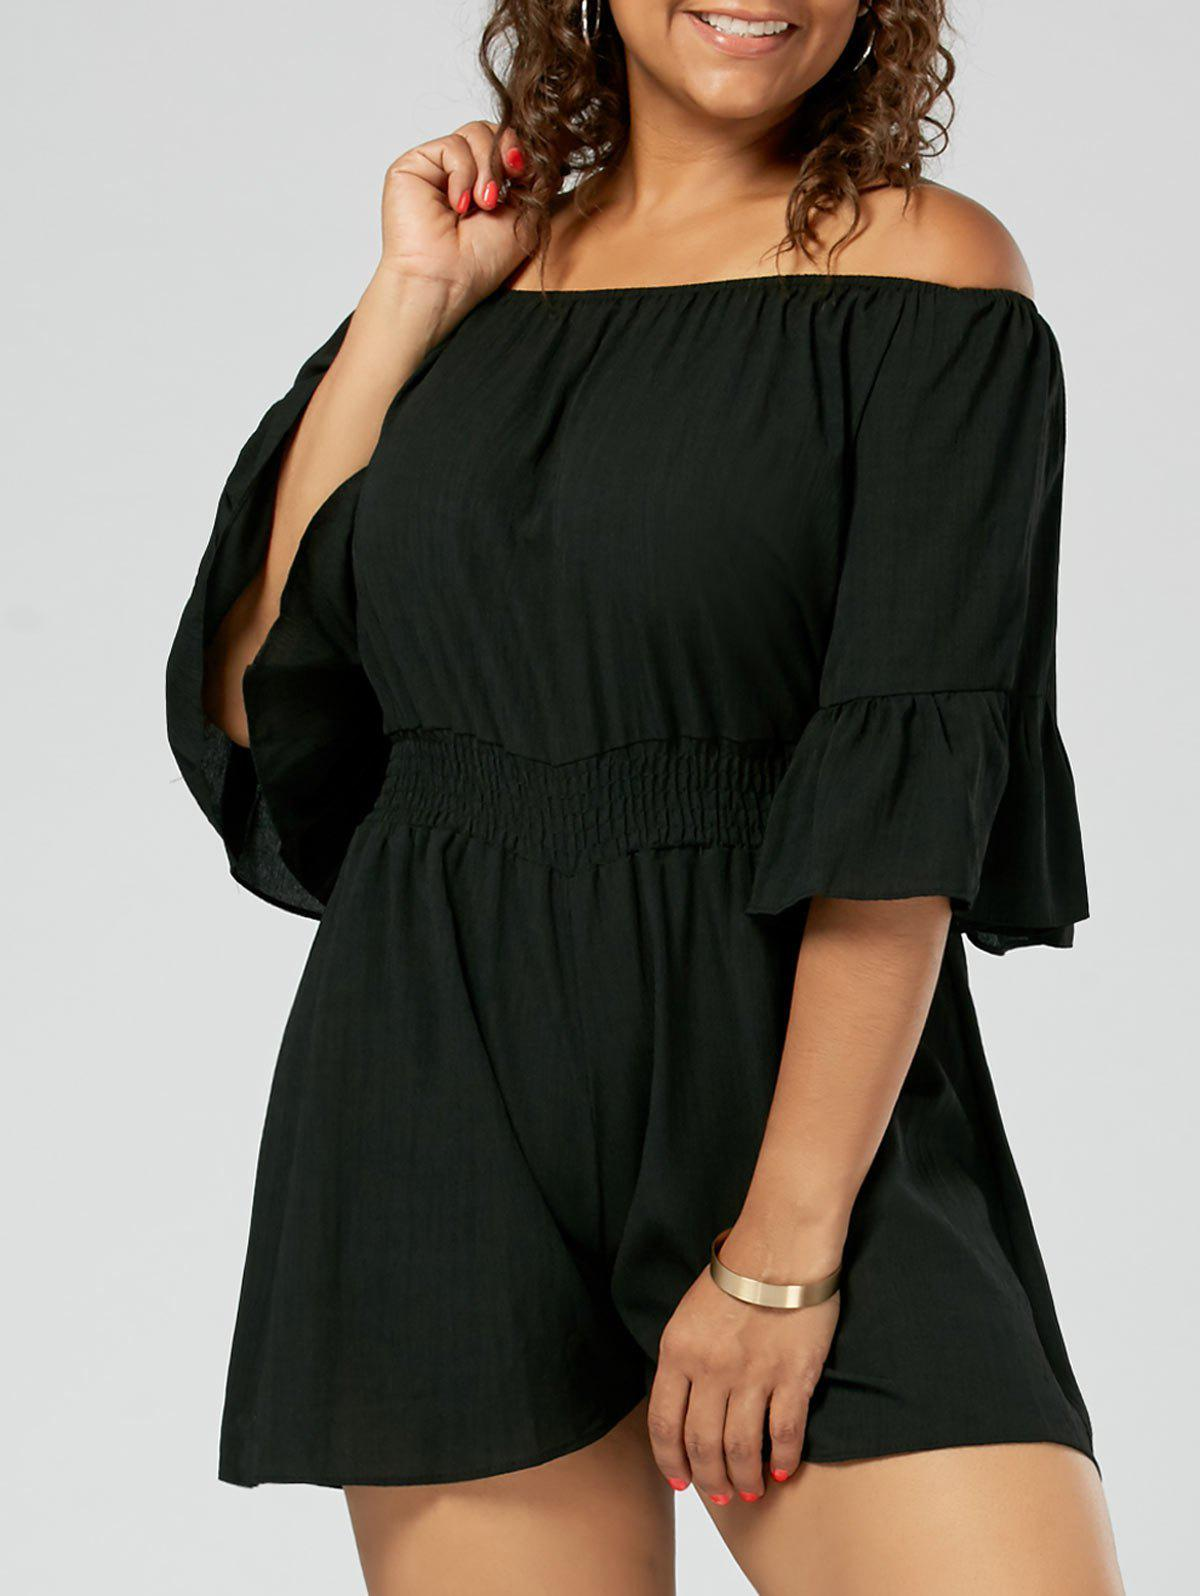 Chiffon Ruffled Off The Shoulder Plus Size RomperWOMEN<br><br>Size: 5XL; Color: BLACK; Style: Fashion; Length: Short; Material: Polyester; Fabric Type: Chiffon; Fit Type: Loose; Waist Type: High; Closure Type: Elastic Waist; Pattern Type: Solid; Embellishment: Ruffles; Pant Style: Wide Leg Pants; Weight: 0.2000kg; Package Contents: 1 x Romper;